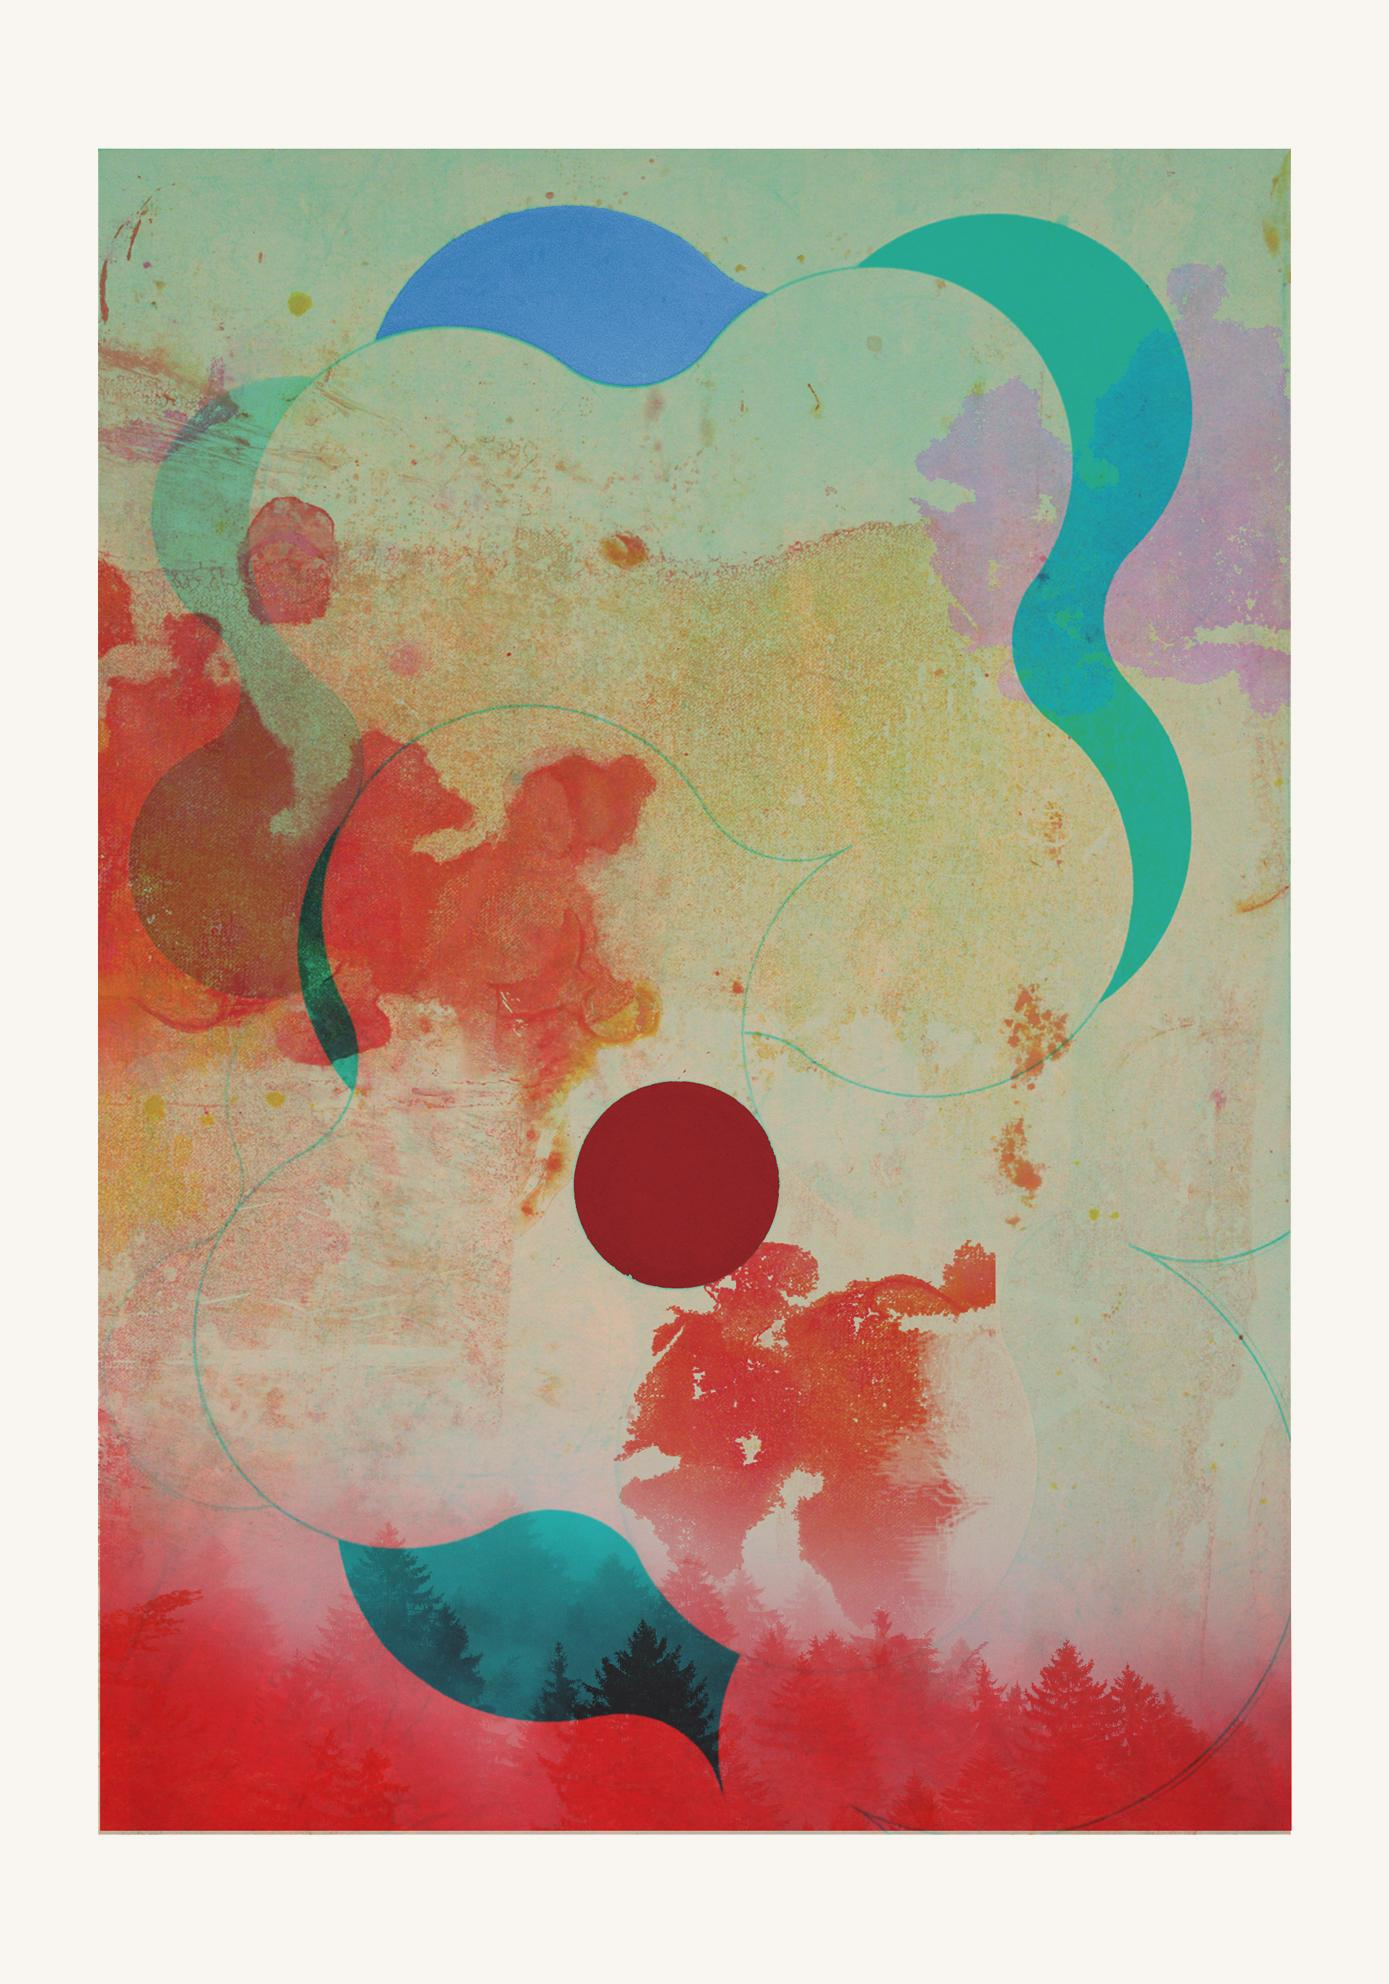 Forest 07 -Contemporary , Abstract, Gestual, , Pop, Modern, Geometric, landscape